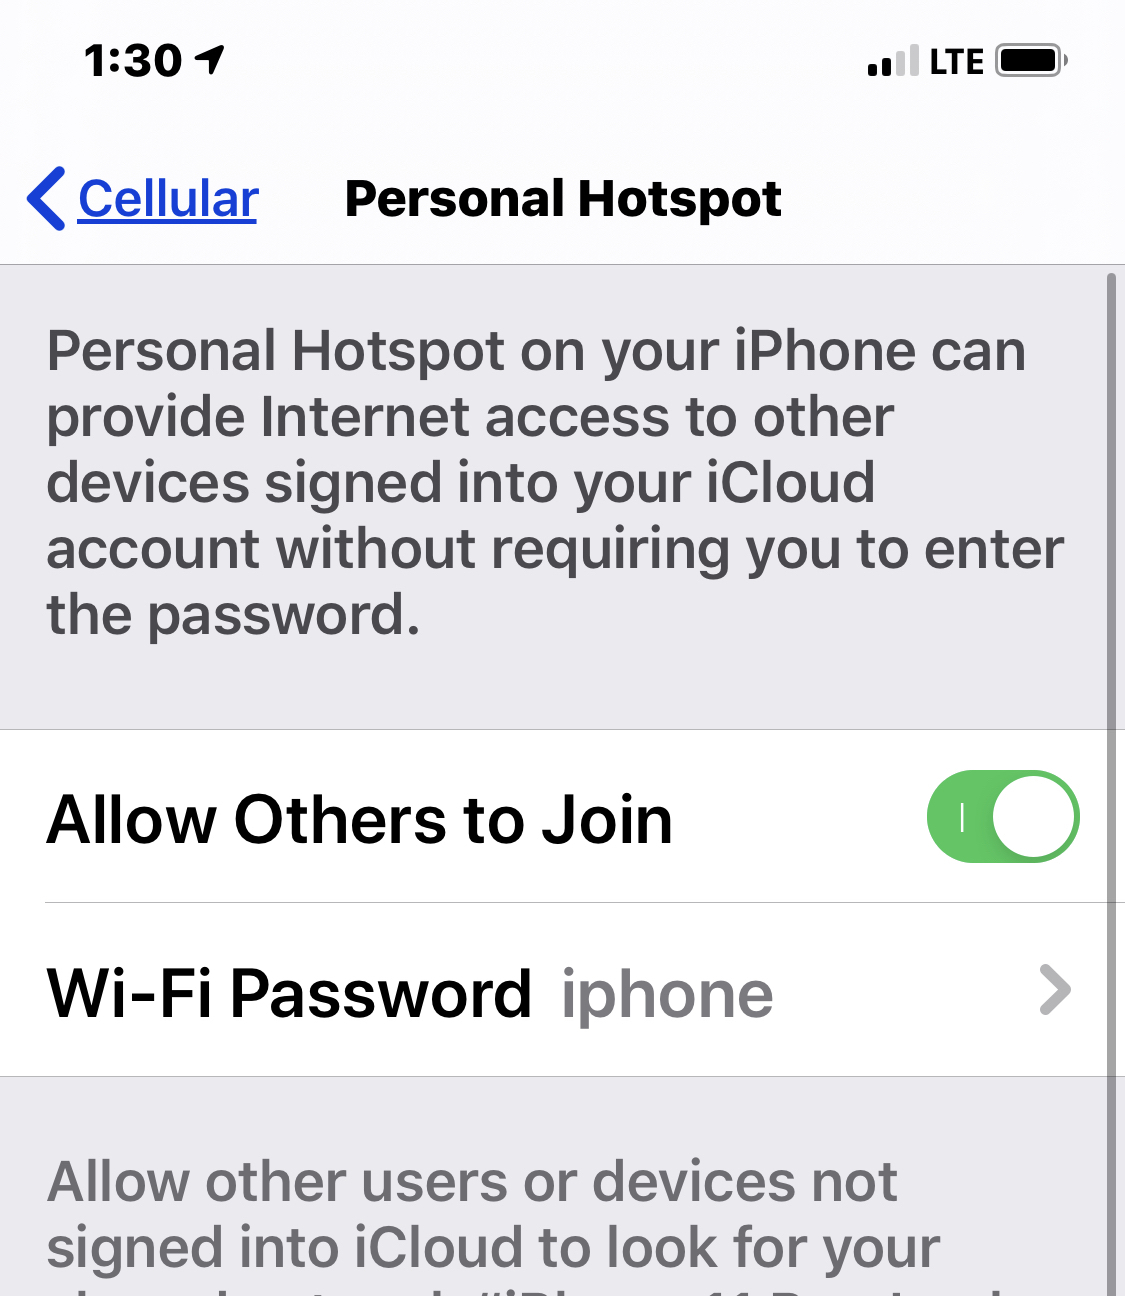 iPhone Personal Hotspot Not Working? Try These Fixes to Troubleshoot